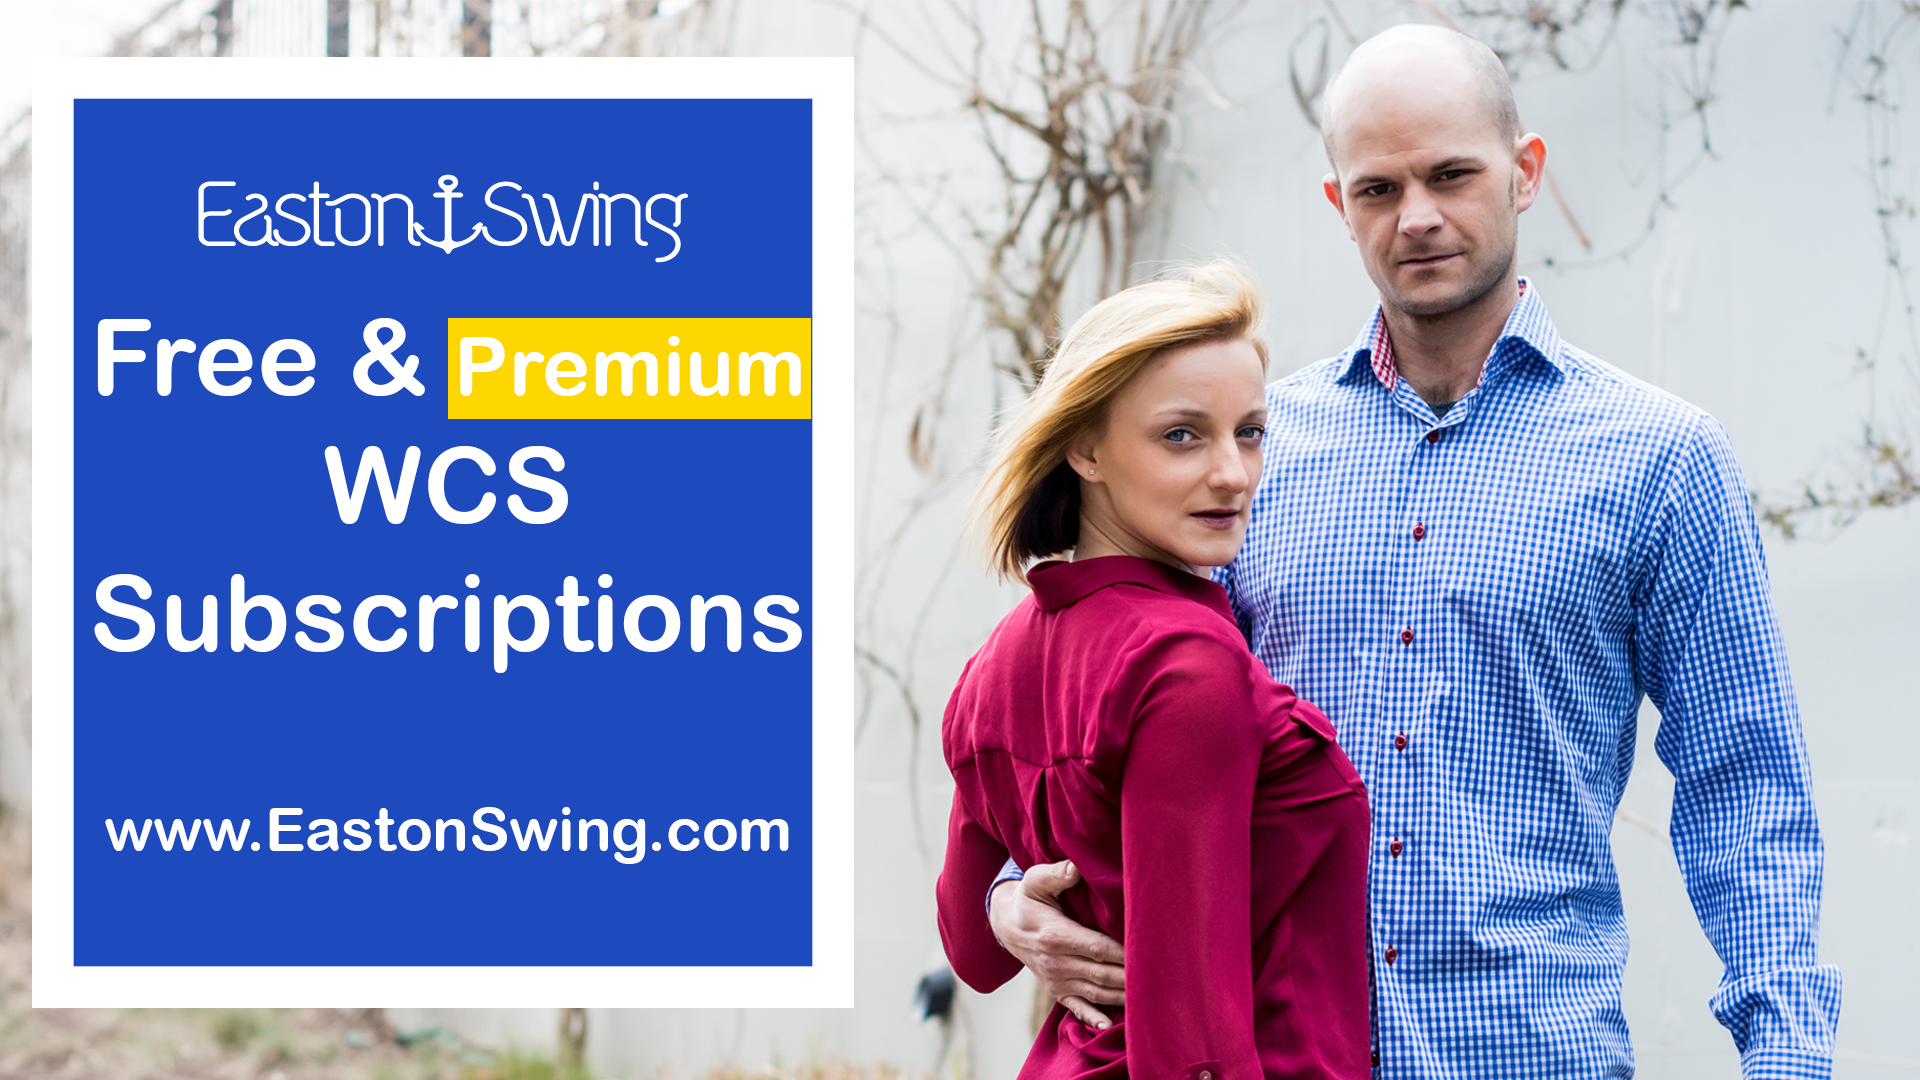 EastonSwing free and premium subscriptions